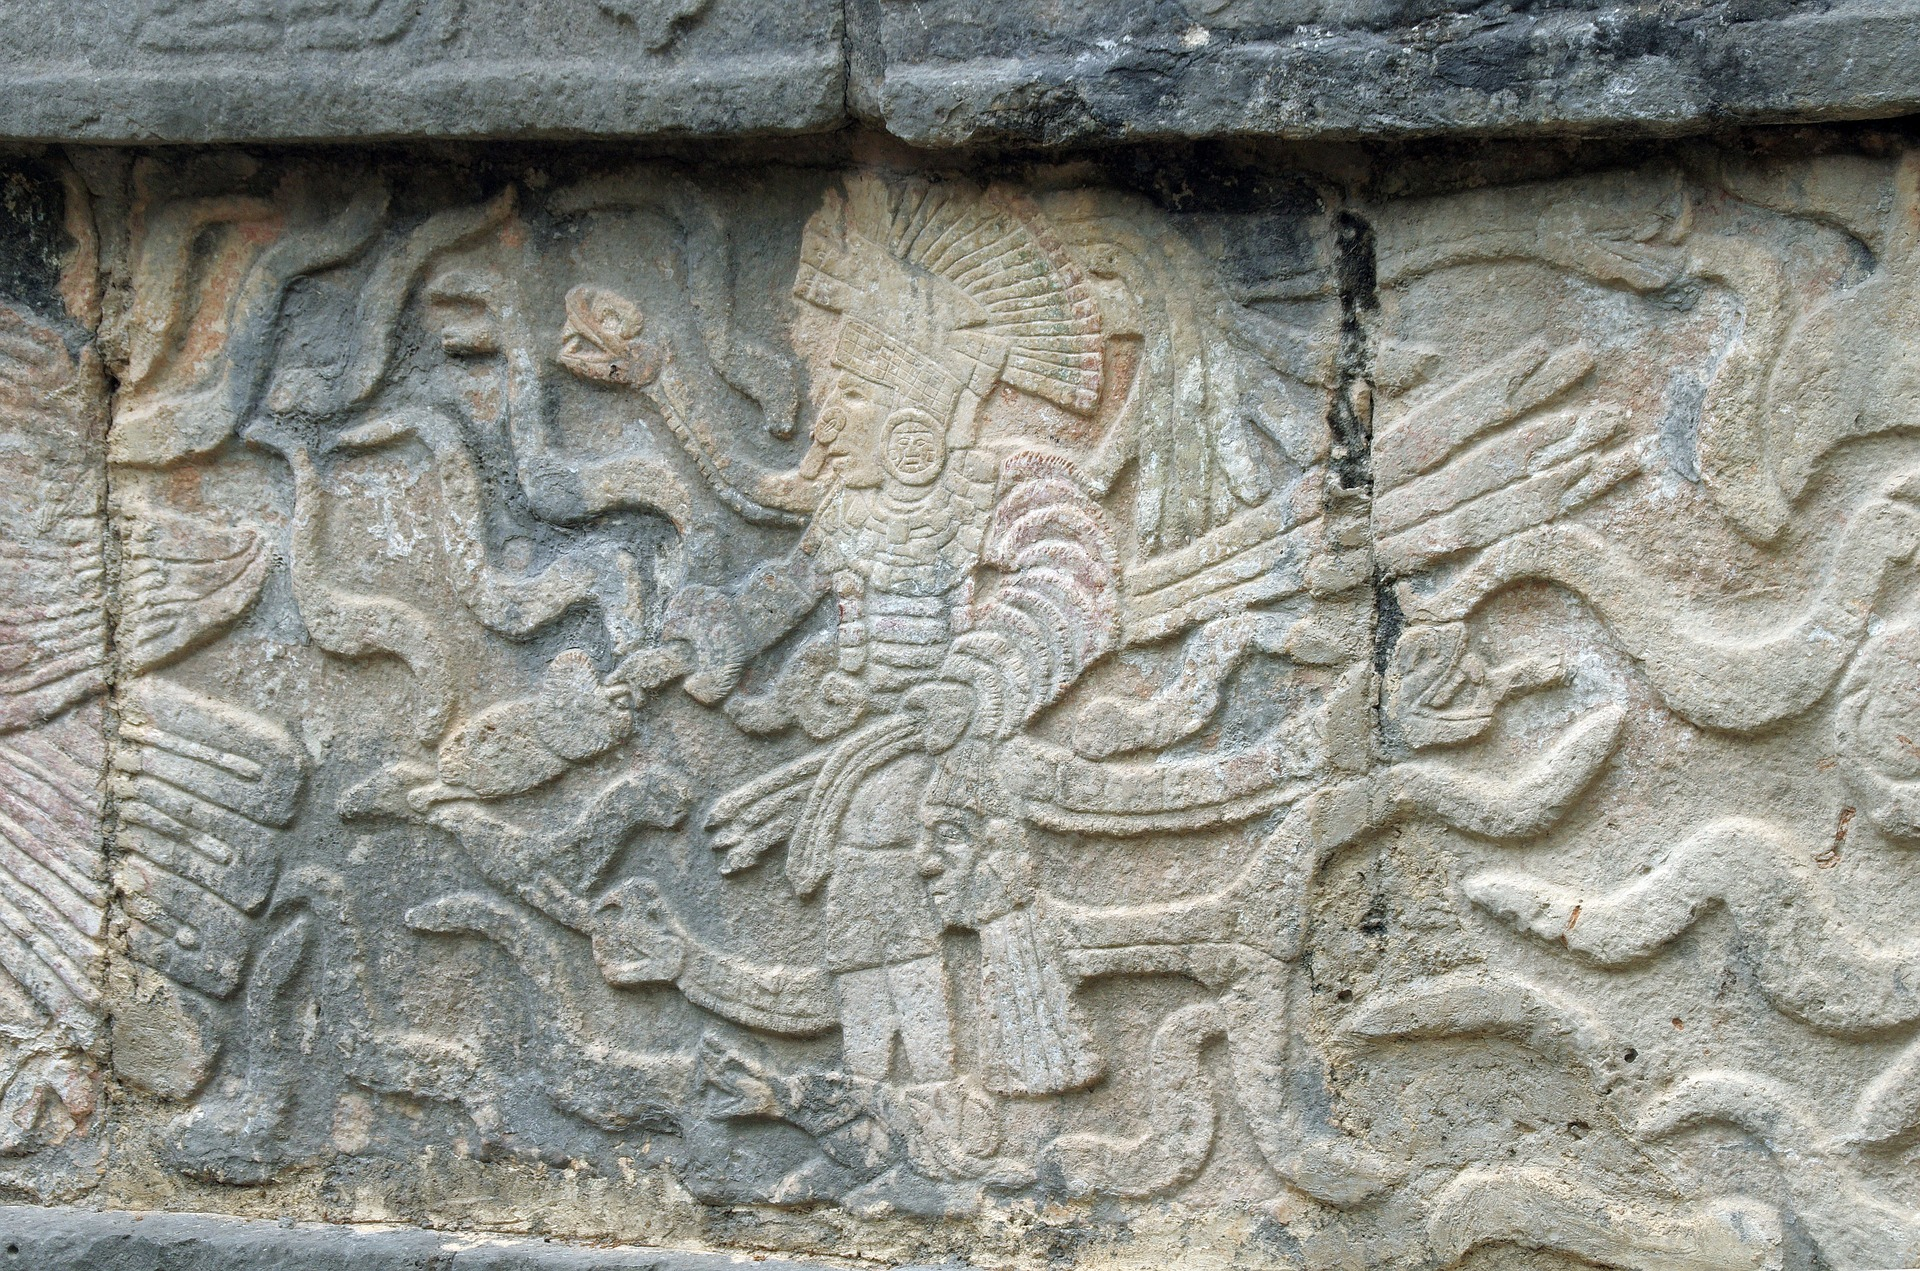 detailed stone carvings